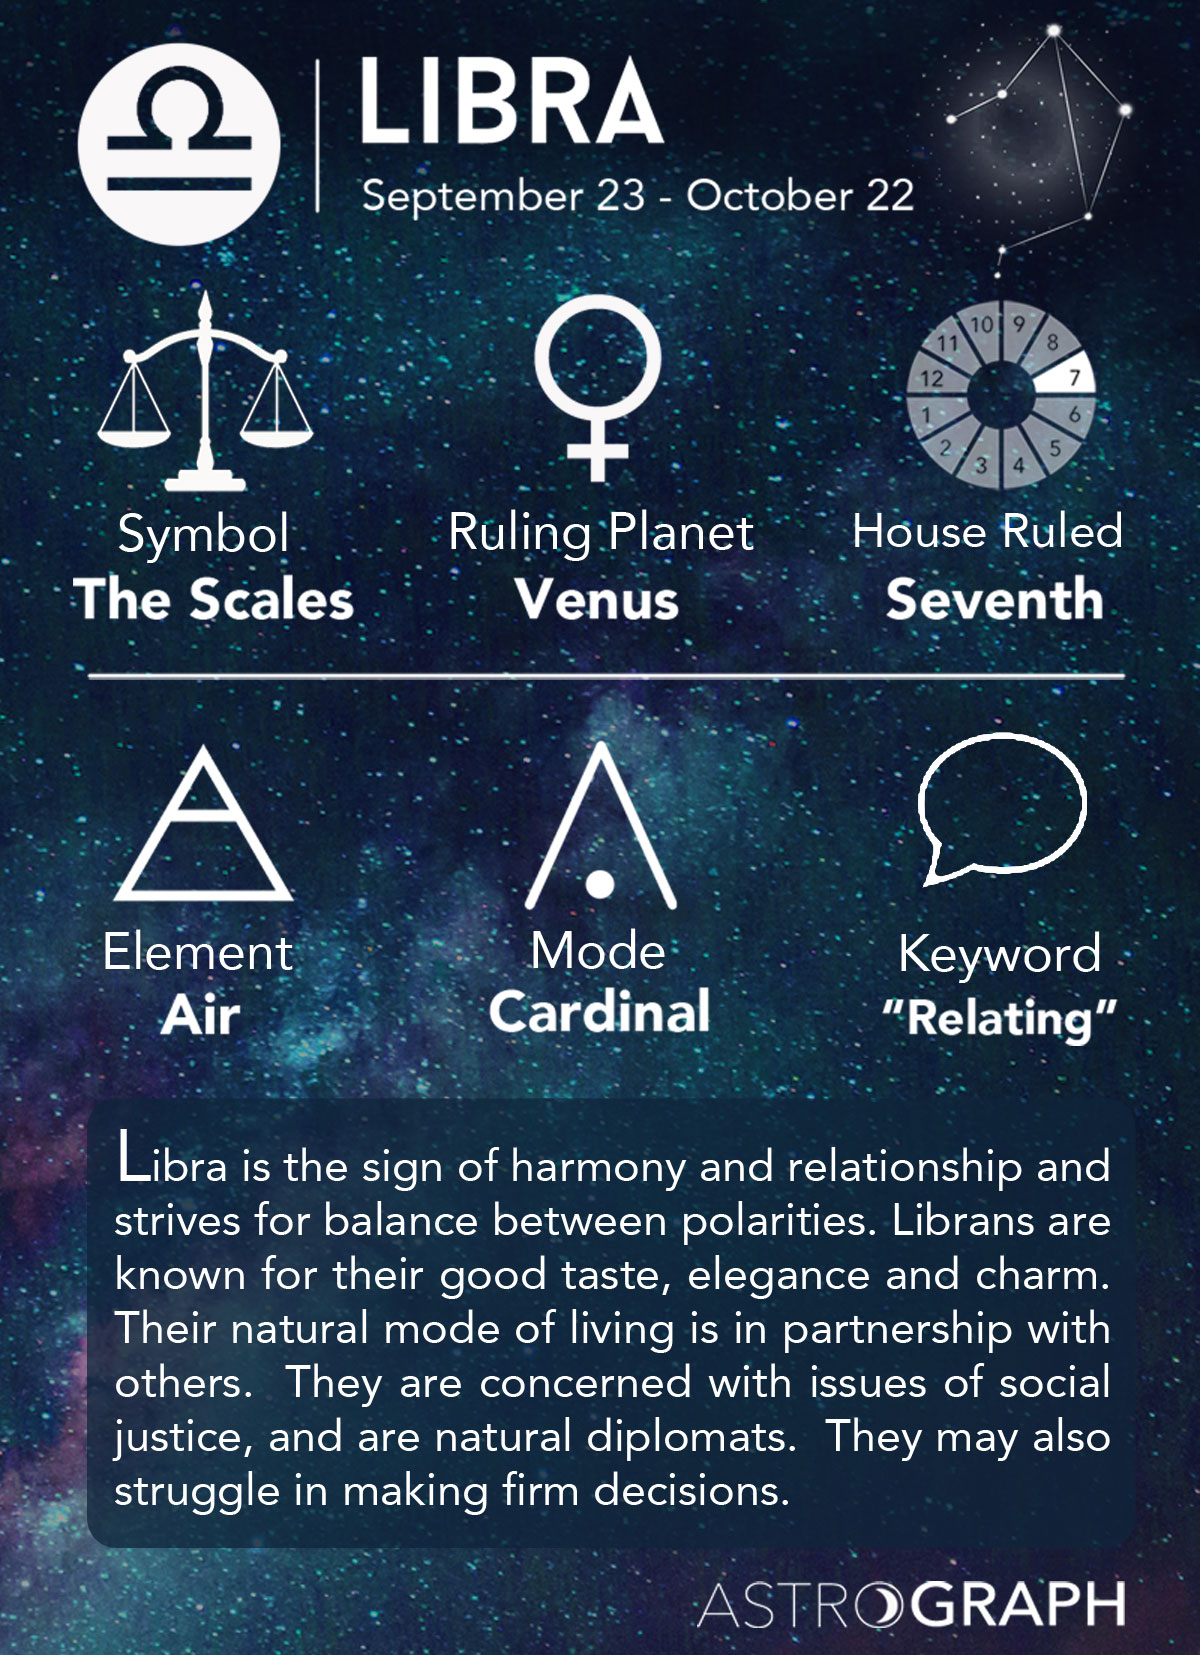 ASTROGRAPH - Libra in Astrology